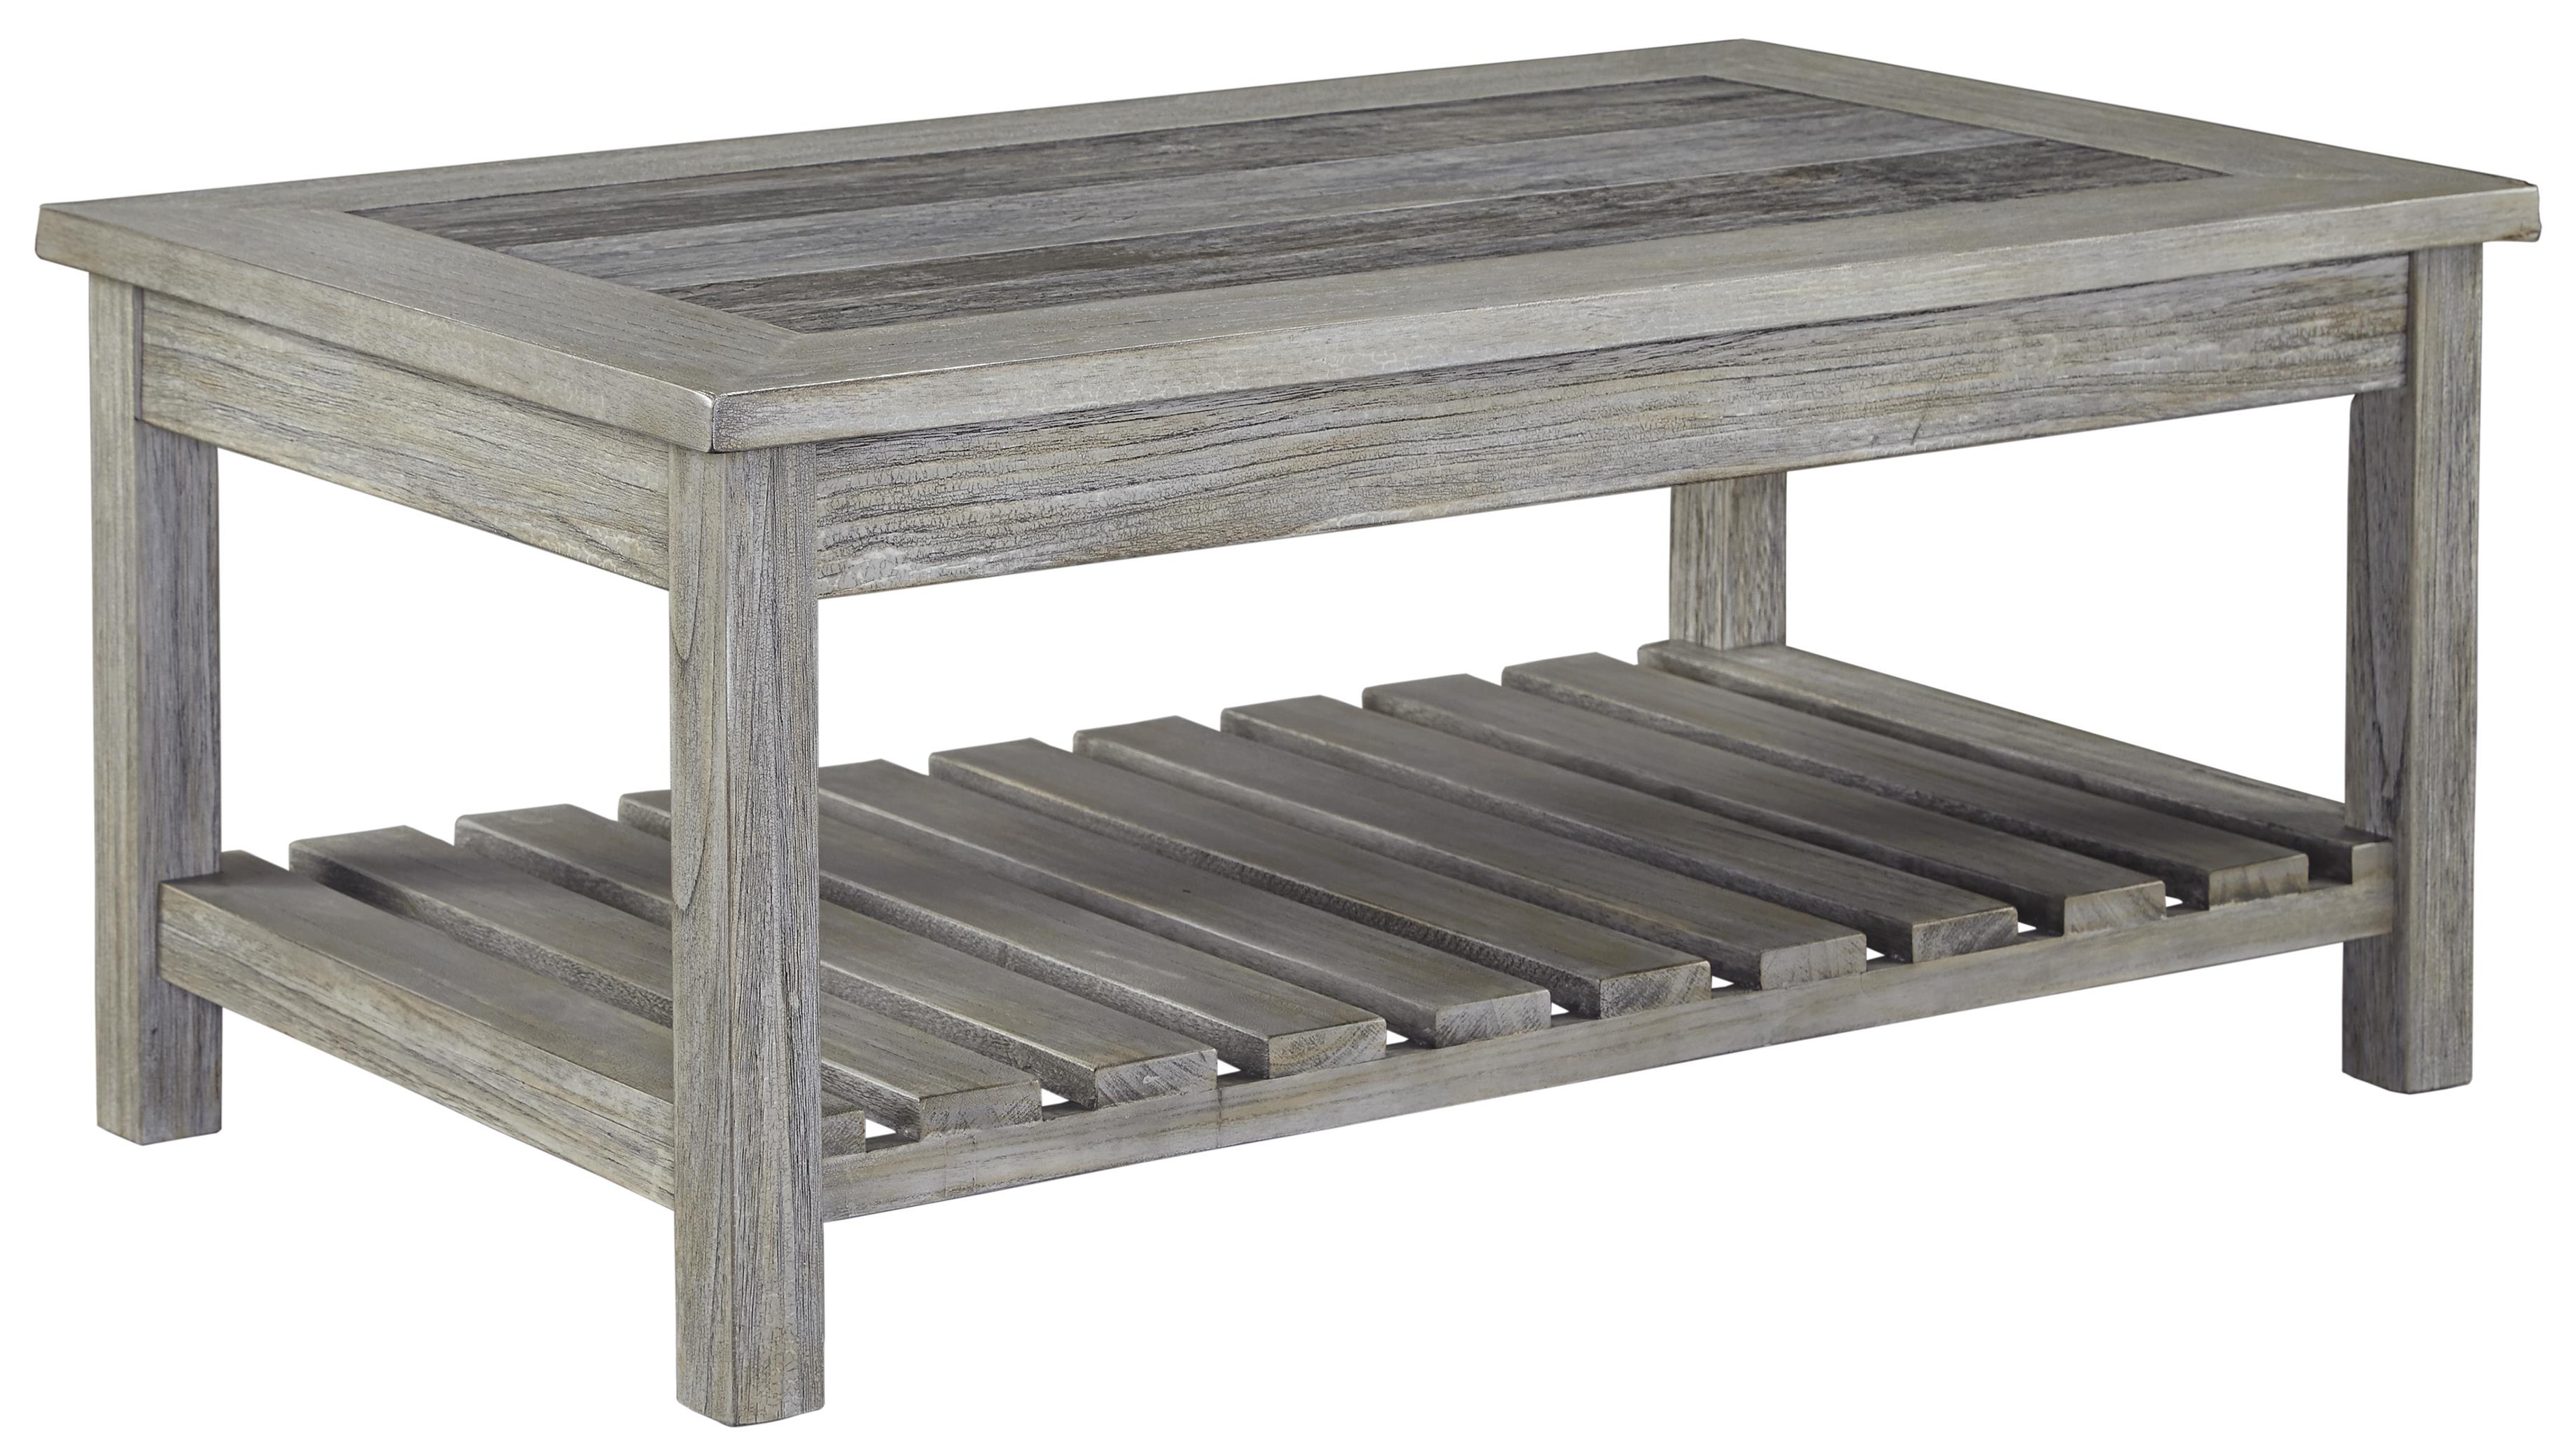 Rectangular Cocktail Table With Ceramic Tile Top And Slat Shelf By